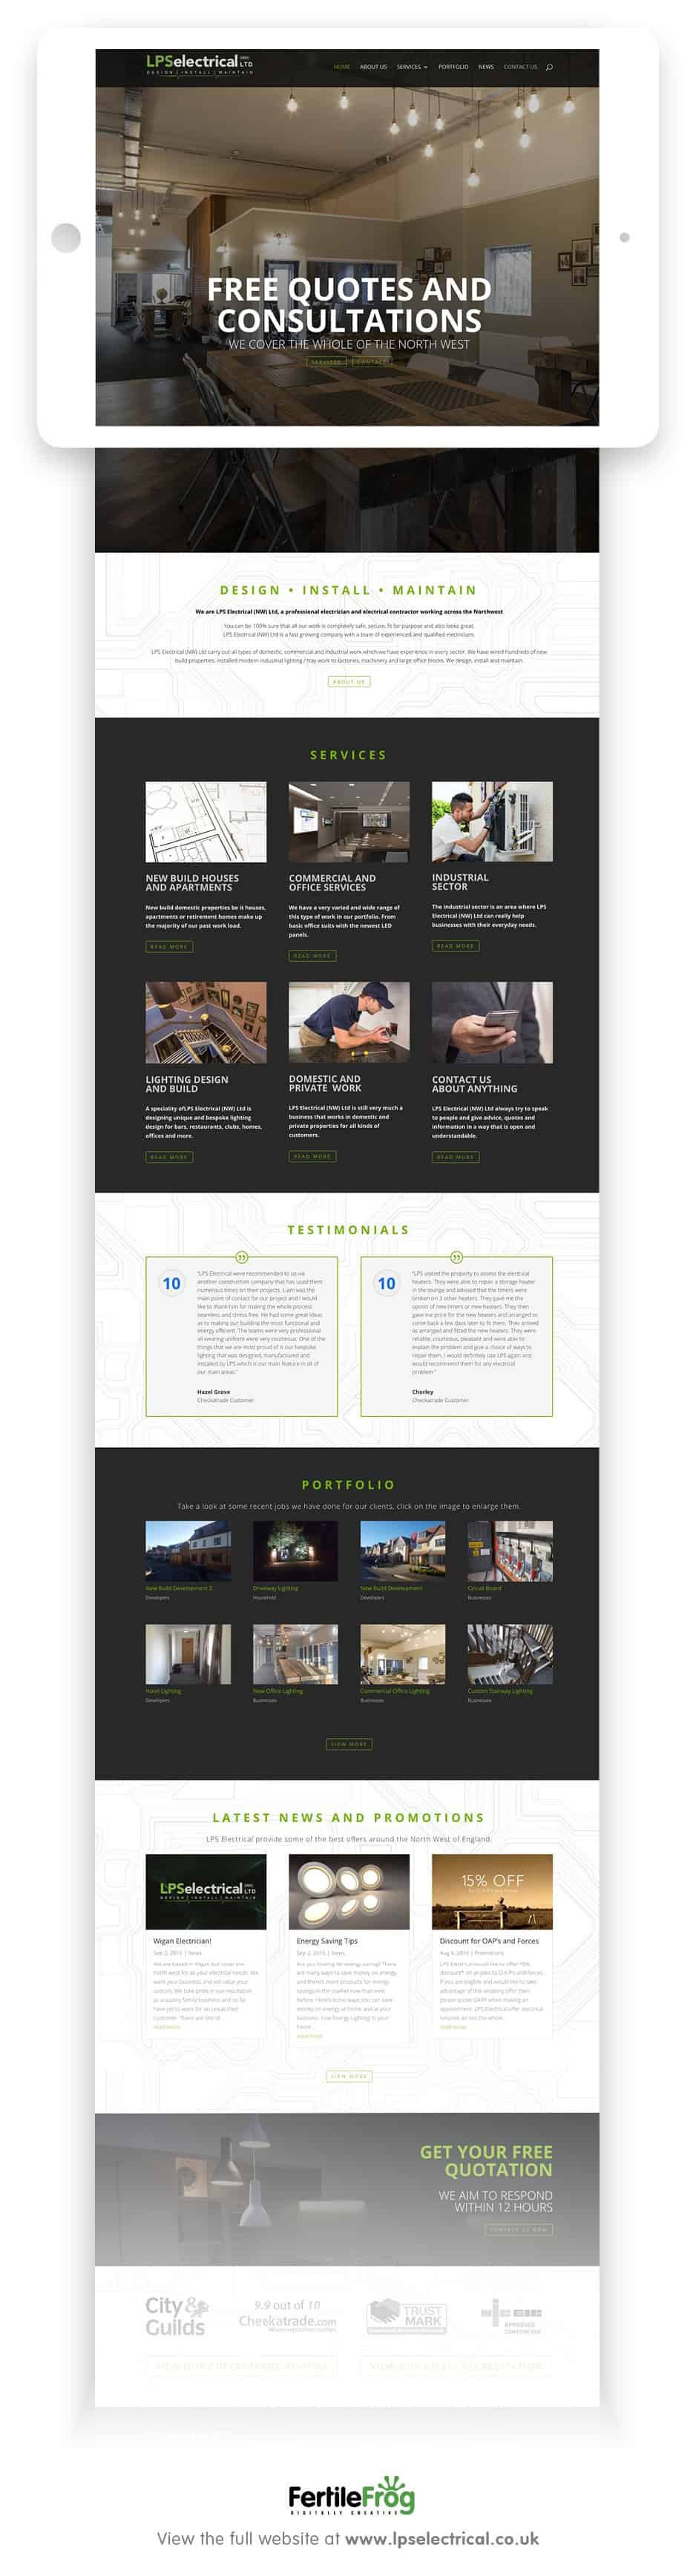 LPS Electrical website home page designed by fertile frog